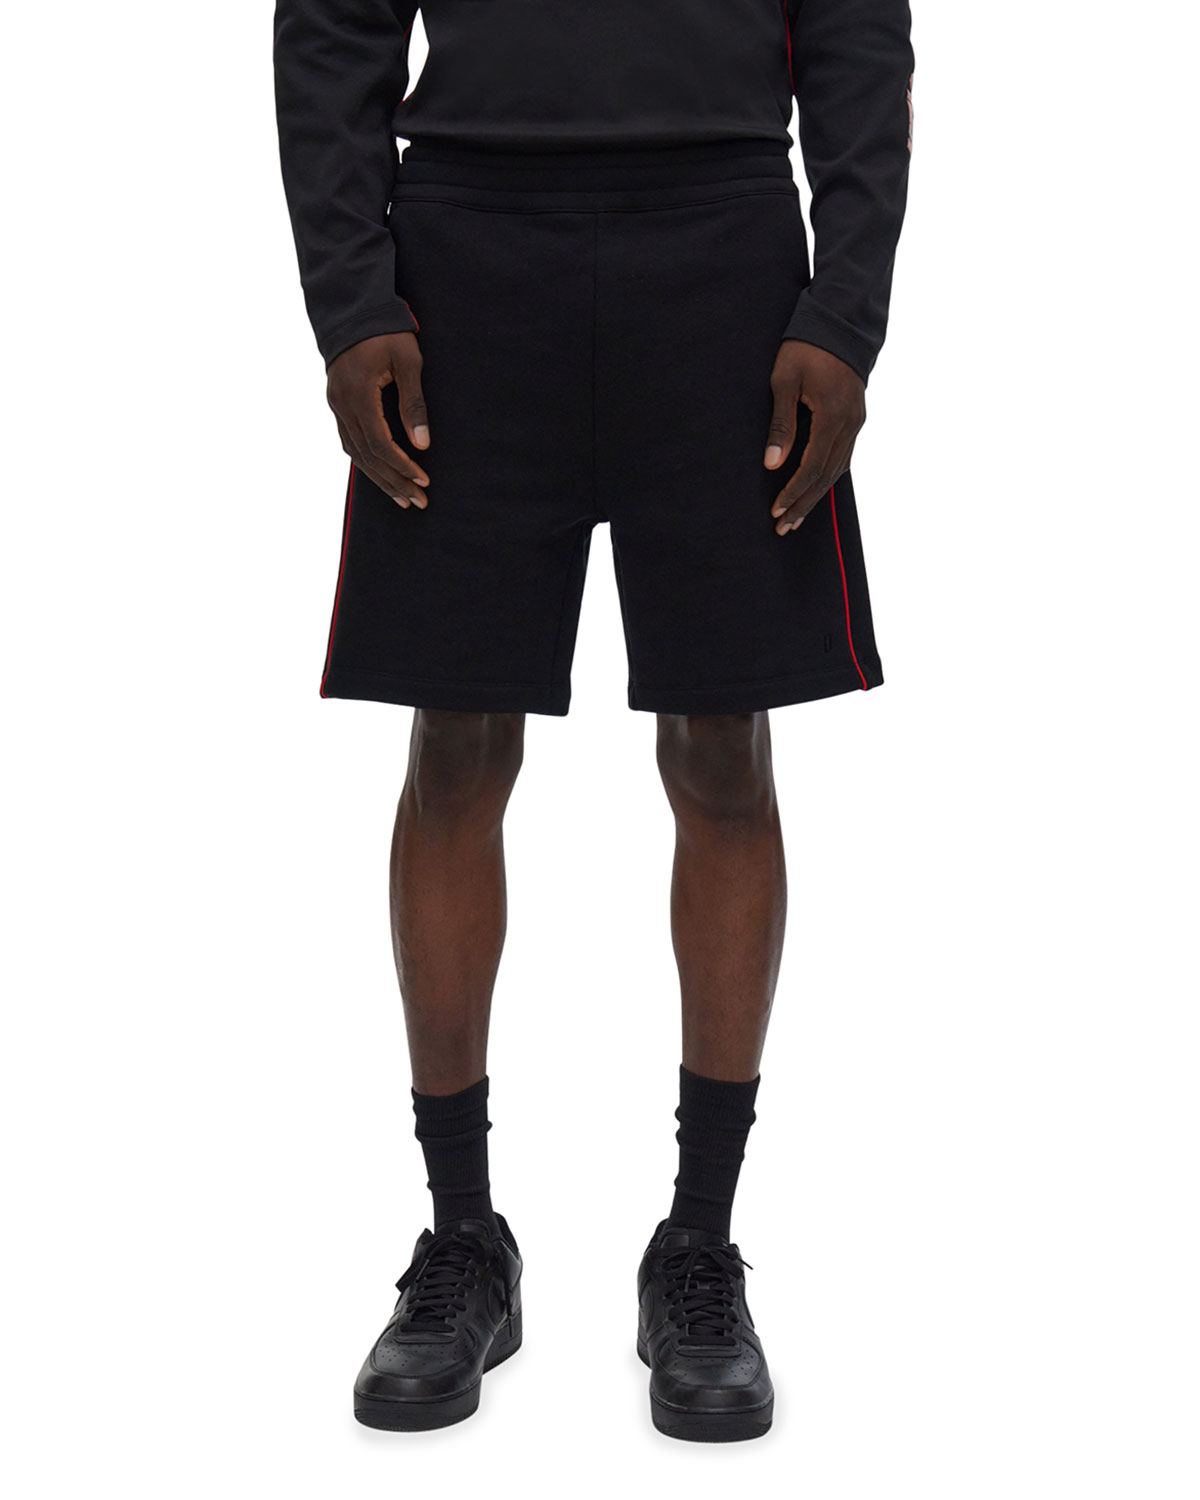 Men's Loose French Terry Sweat Shorts w/ Piping